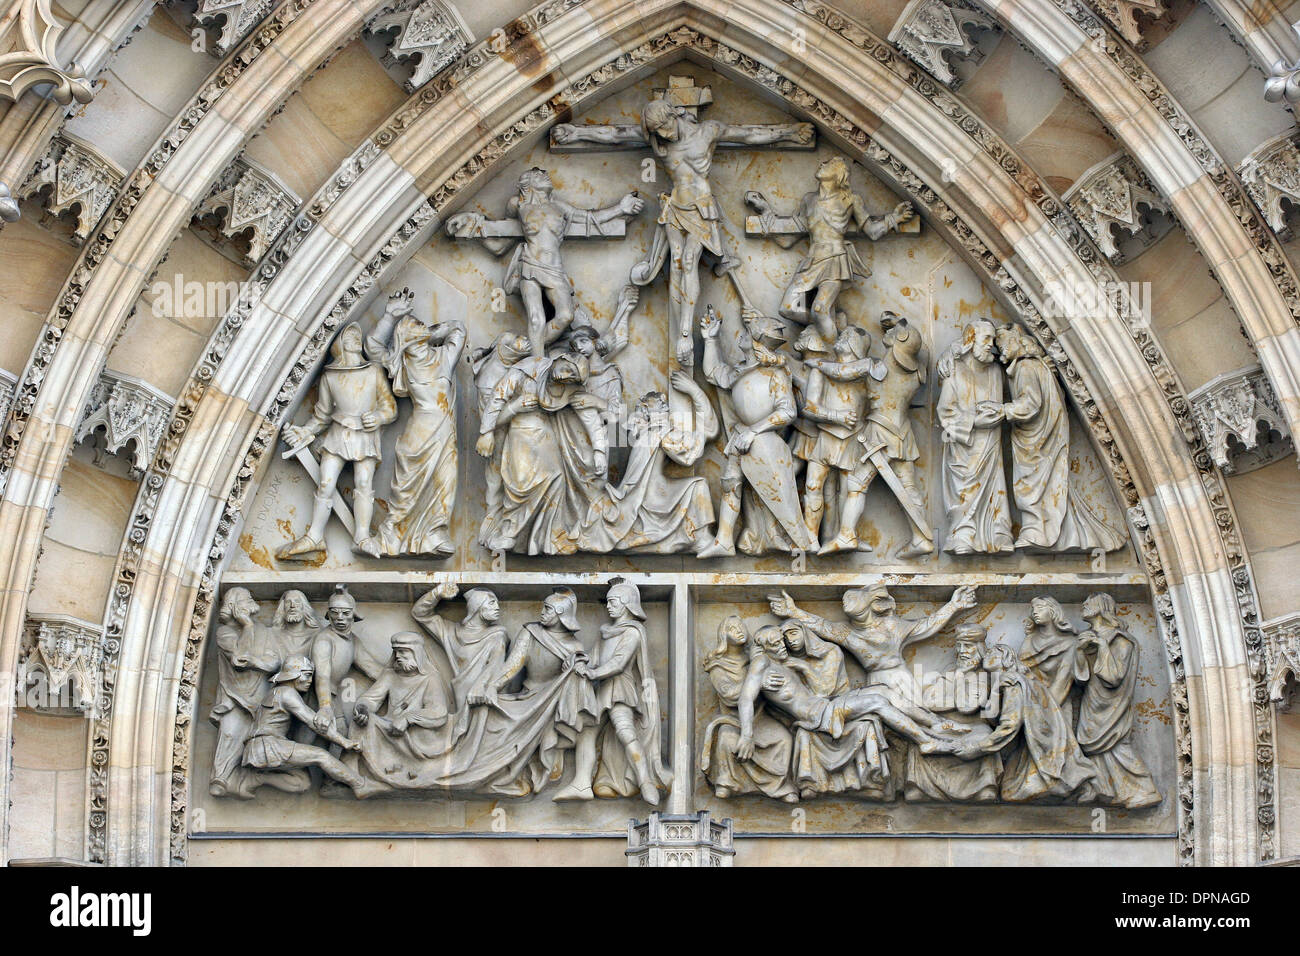 Czech Republic. Prague. St. Vitus Cathedral. Archivolts and tympanum. Gothic Revival. West facade. 19th century. Castle complex. - Stock Image